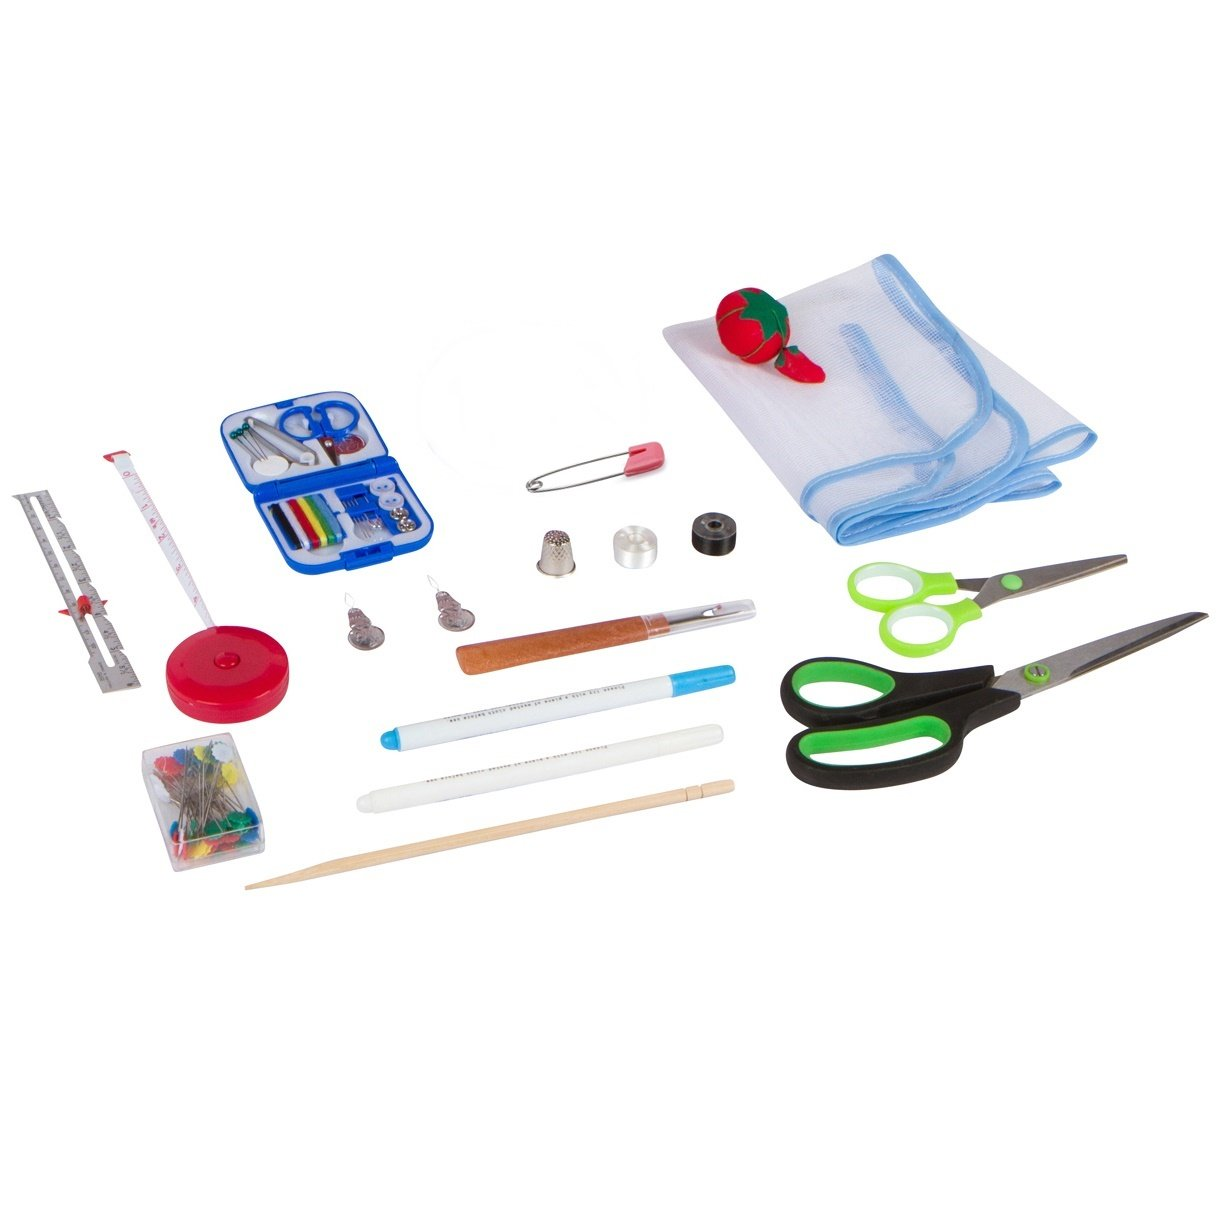 Anyone Can Sew Professional Sewing Kit For Beginners Lamp Wiring Supplies Promotiononline Shopping Promotional With Travel Mending And Full Sized Shears Machines